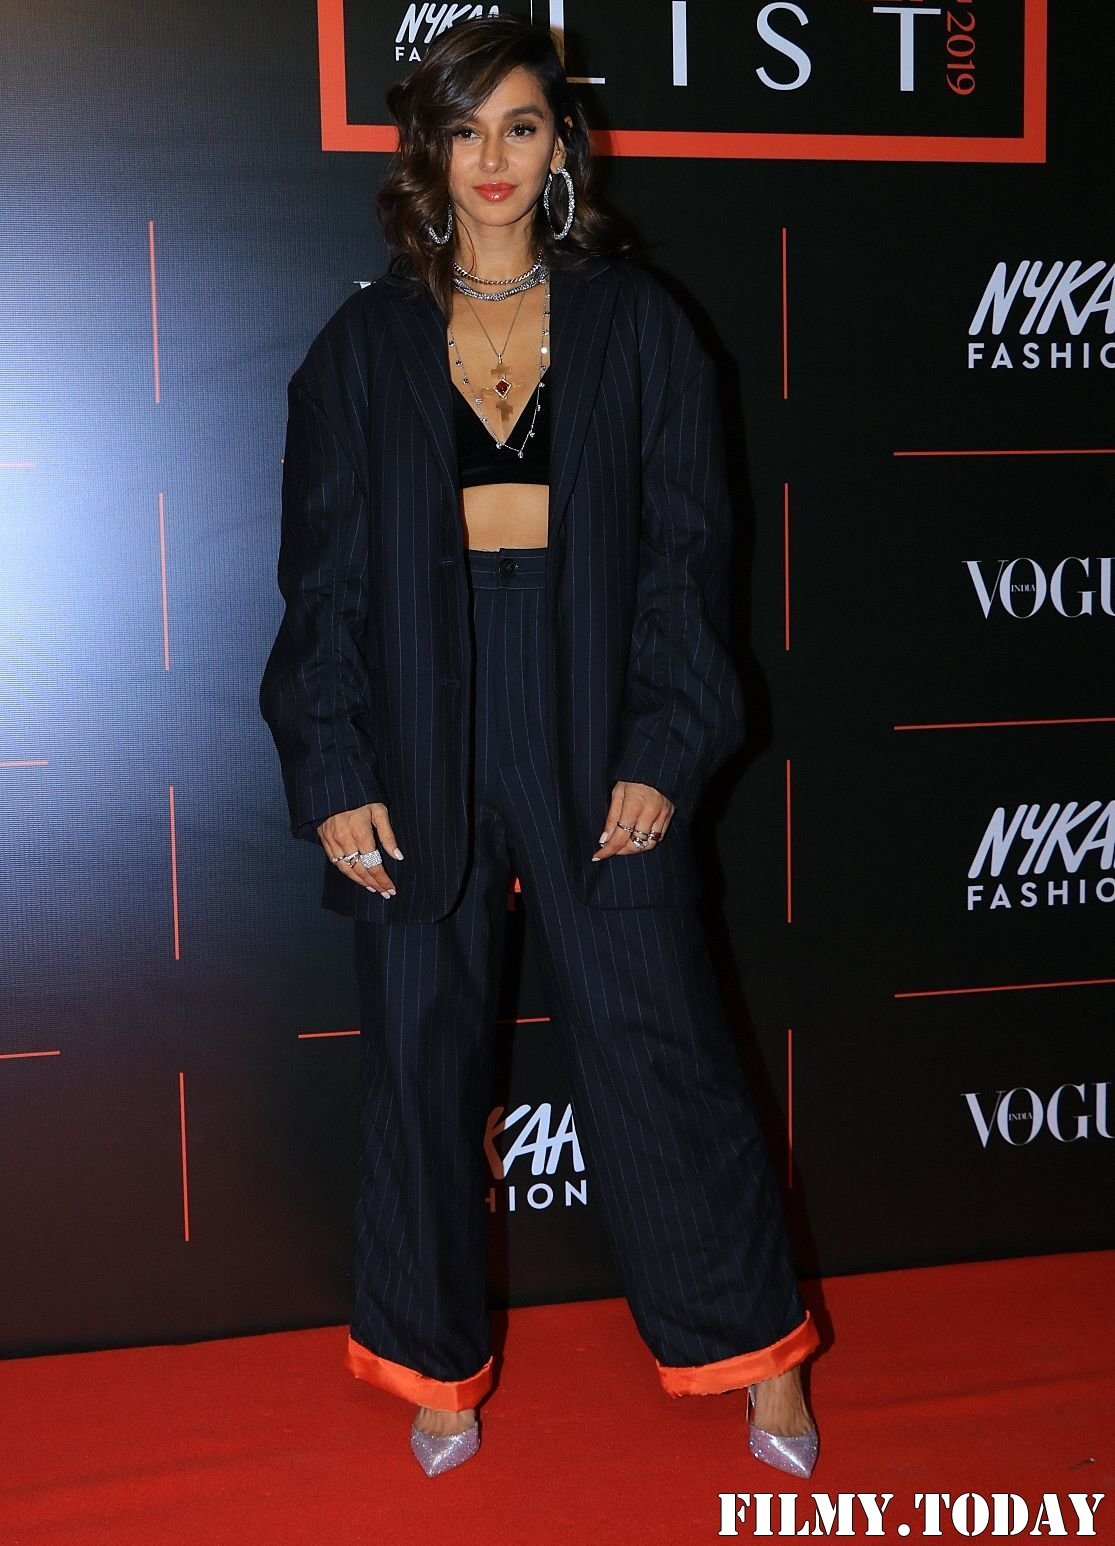 Shibani Dandekar - Photos: Celebs At Vogue The Power List 2019 At St Regis Hotel | Picture 1706355